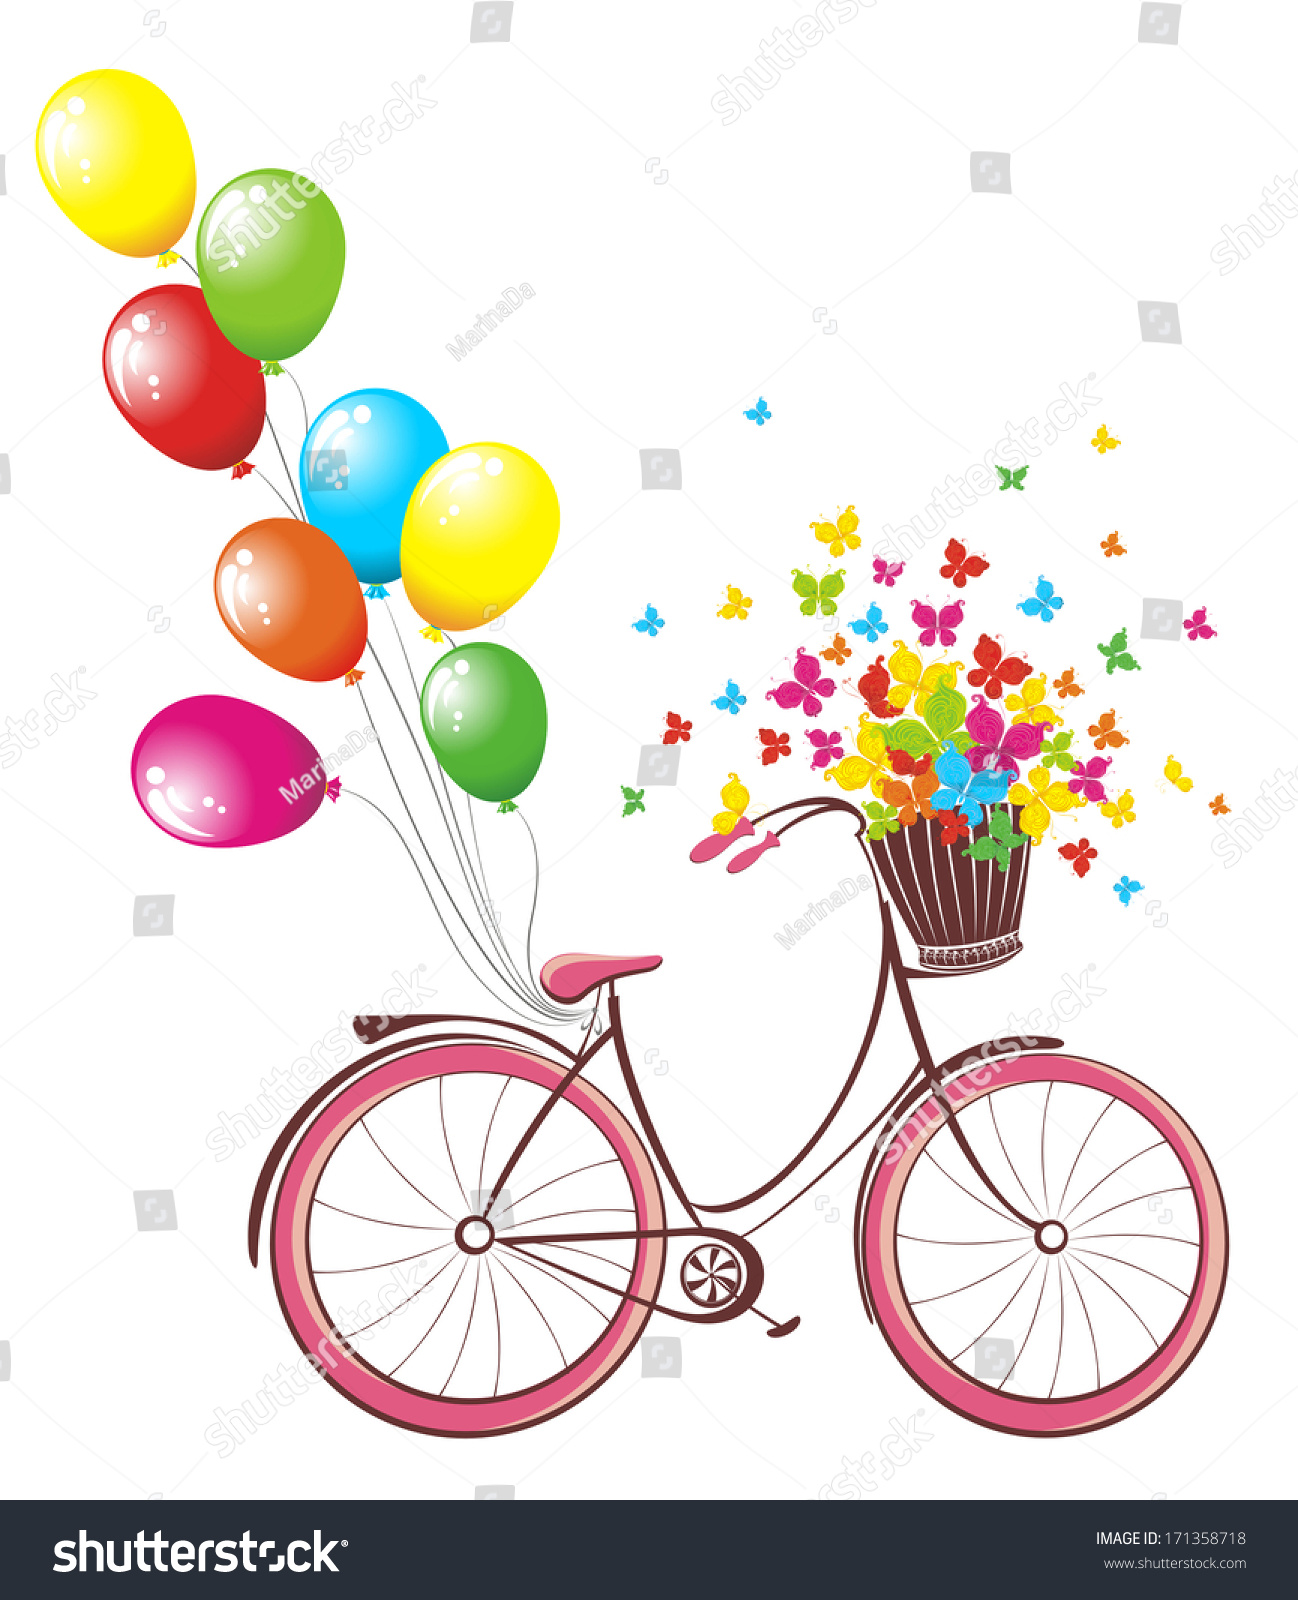 Romantic Birthday Card Bicycle Balloons Basket Vector – Romantic Birthday Card